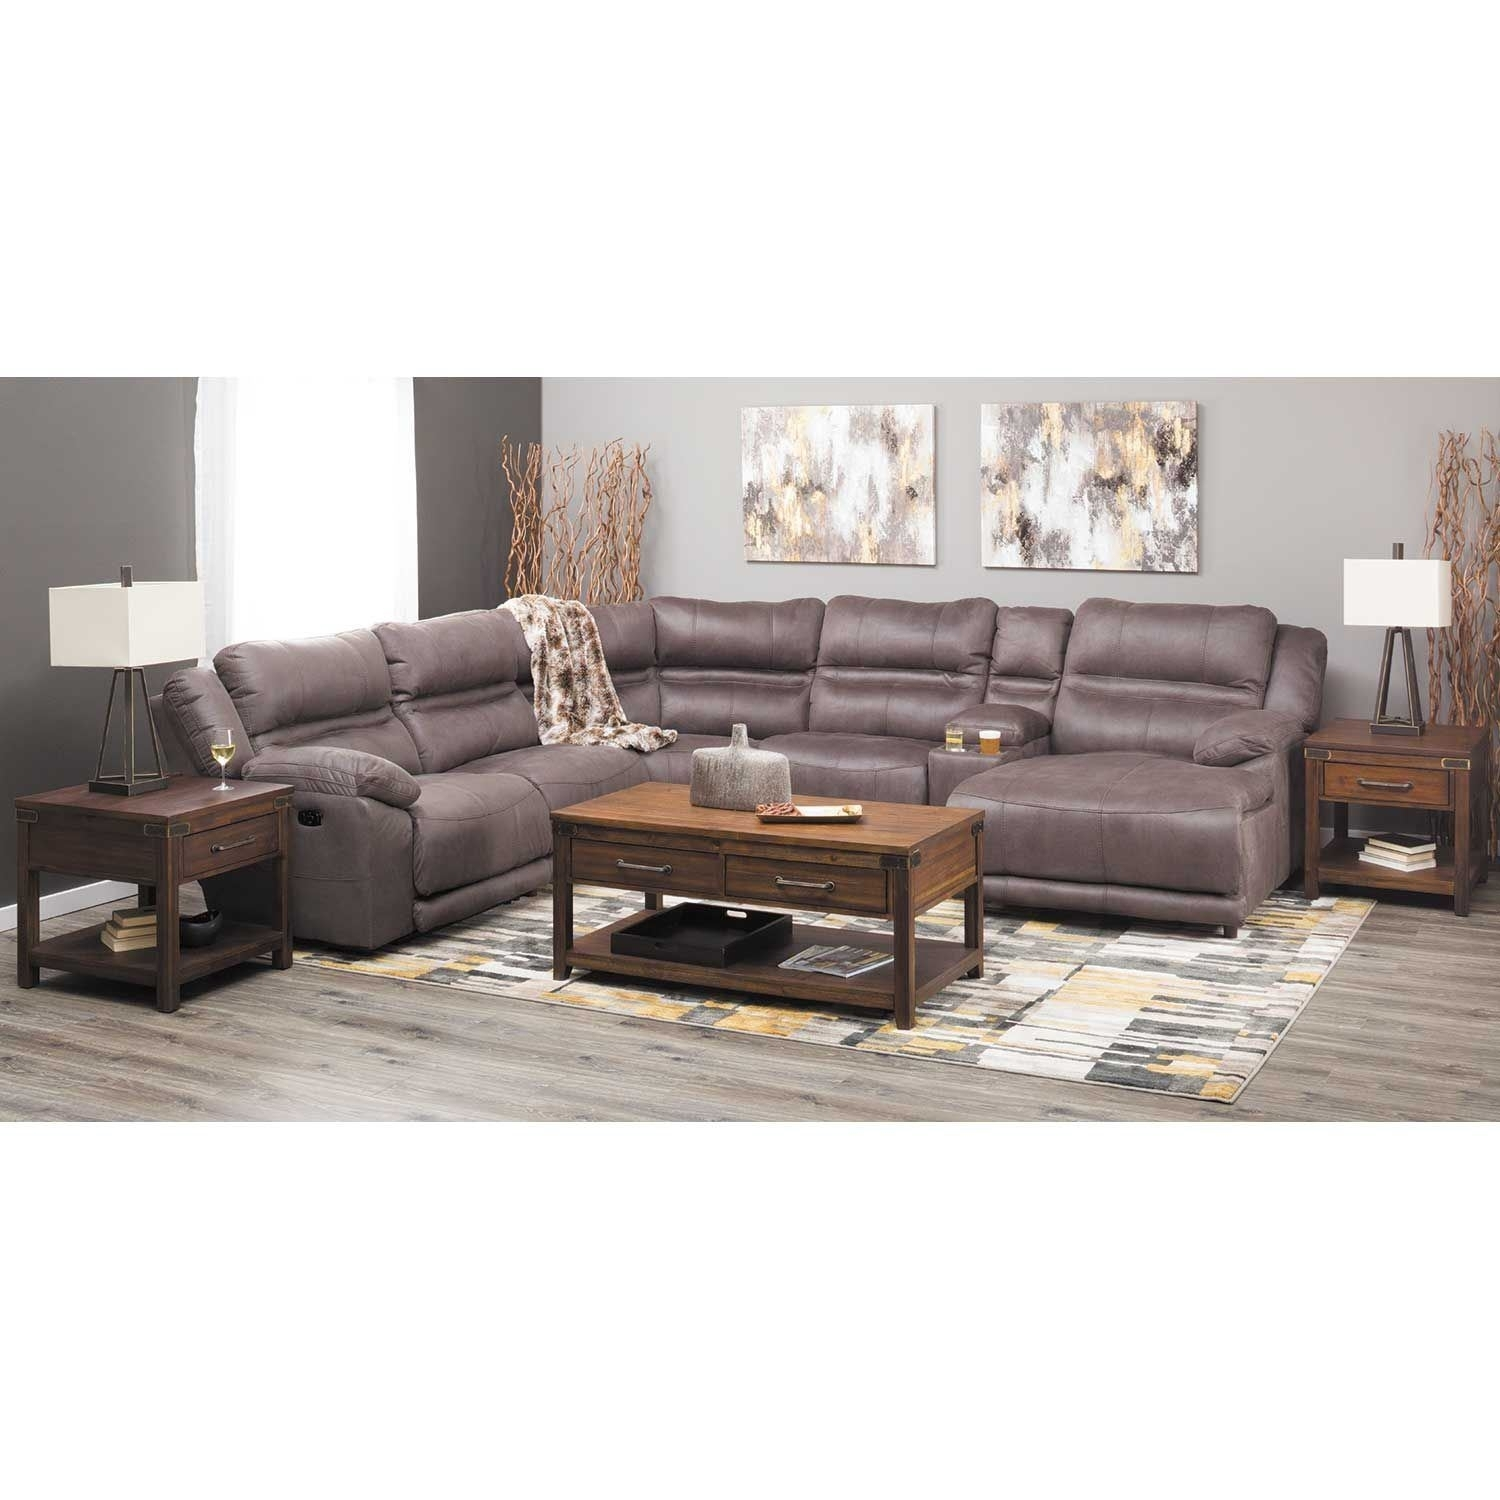 Braxton 6 Piece Power Reclining Sectional With Adjustable Headrest inside Jackson 6 Piece Power Reclining Sectionals (Image 4 of 30)